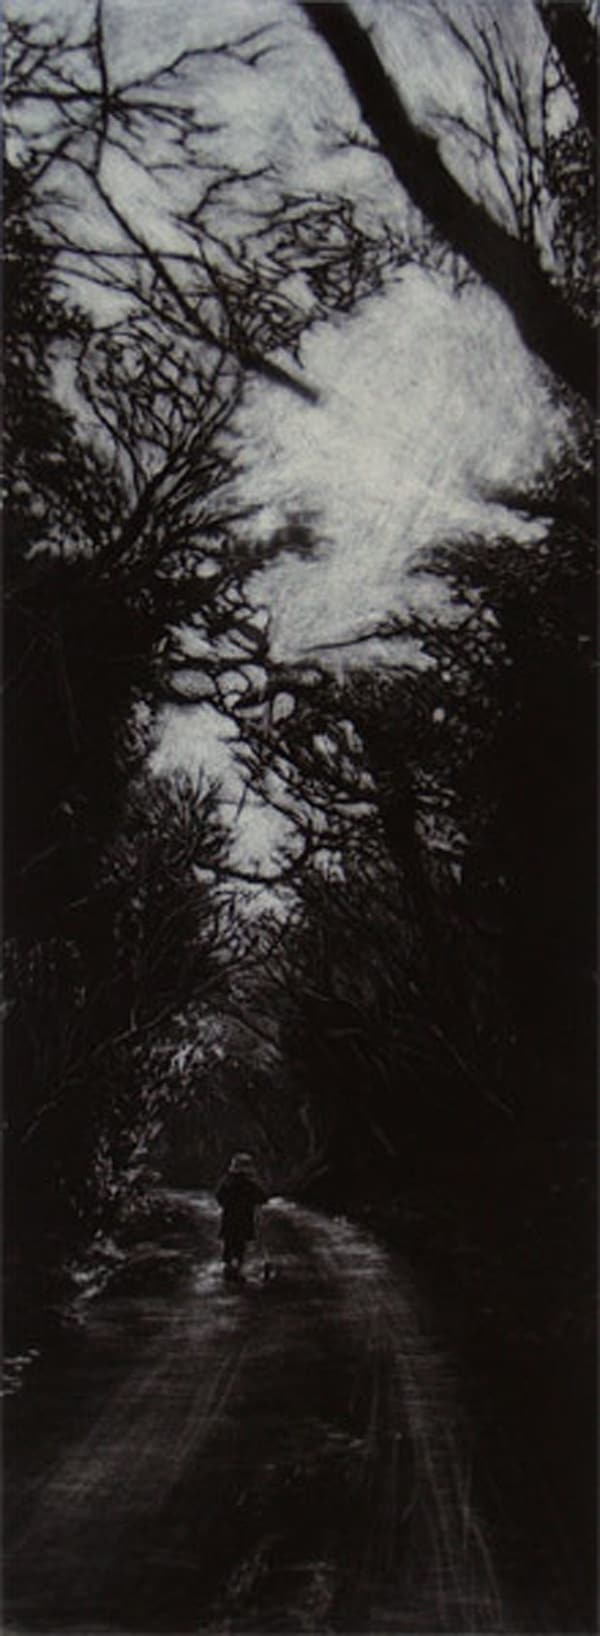 """""""Through the Woods"""" - picture of a little girl with a scooter walking along the track in the woods. Original print mezzotint by painter-printmaker Marina Kim"""